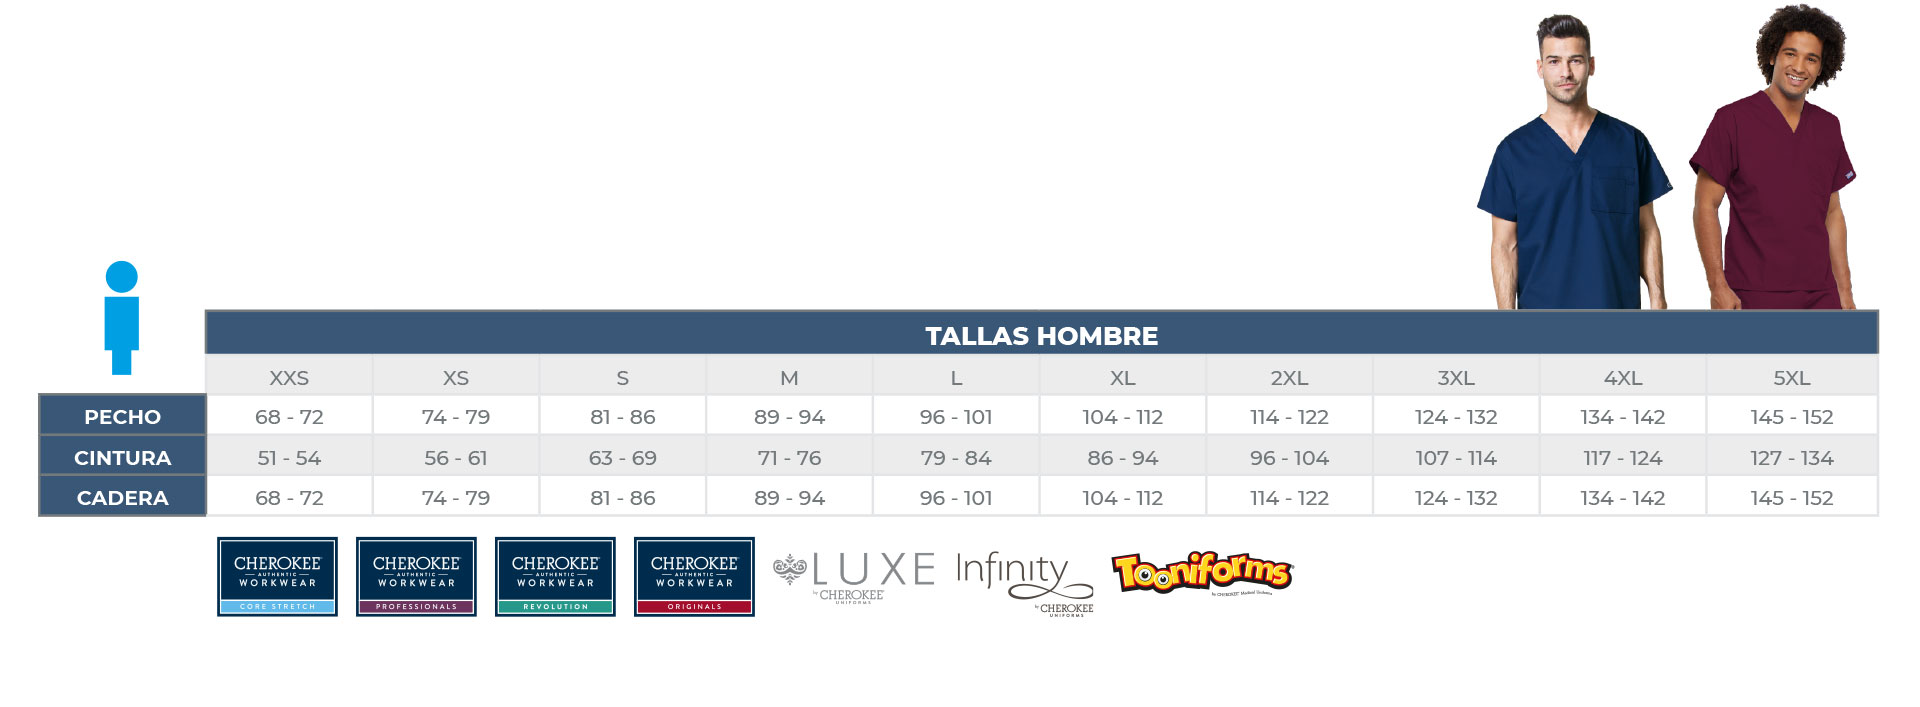 Tabla de tallas uniformes (7)